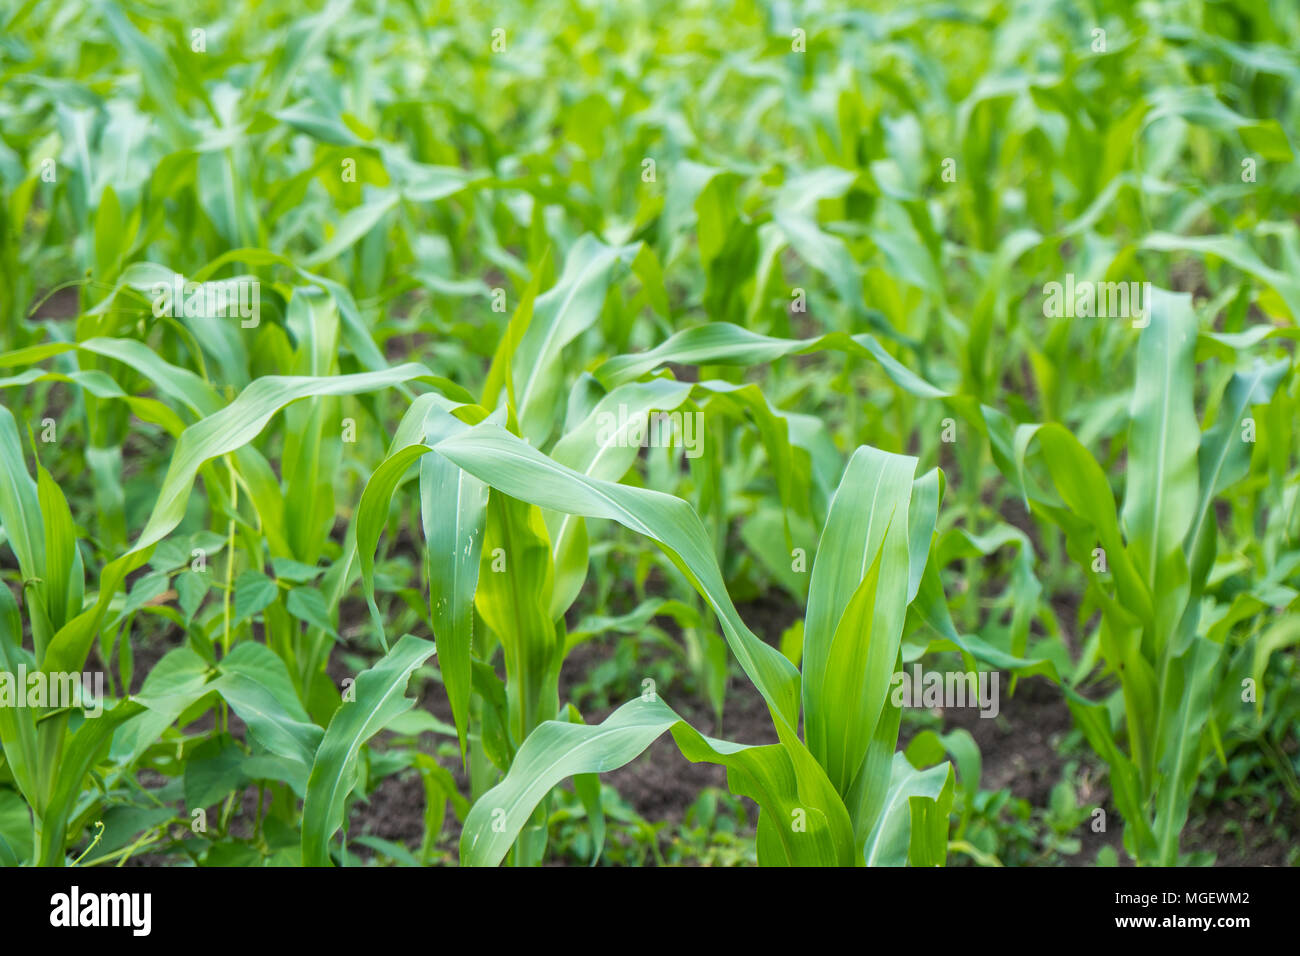 Small corn field agriculture. Green nature. Rural farm land in summer. - Stock Image